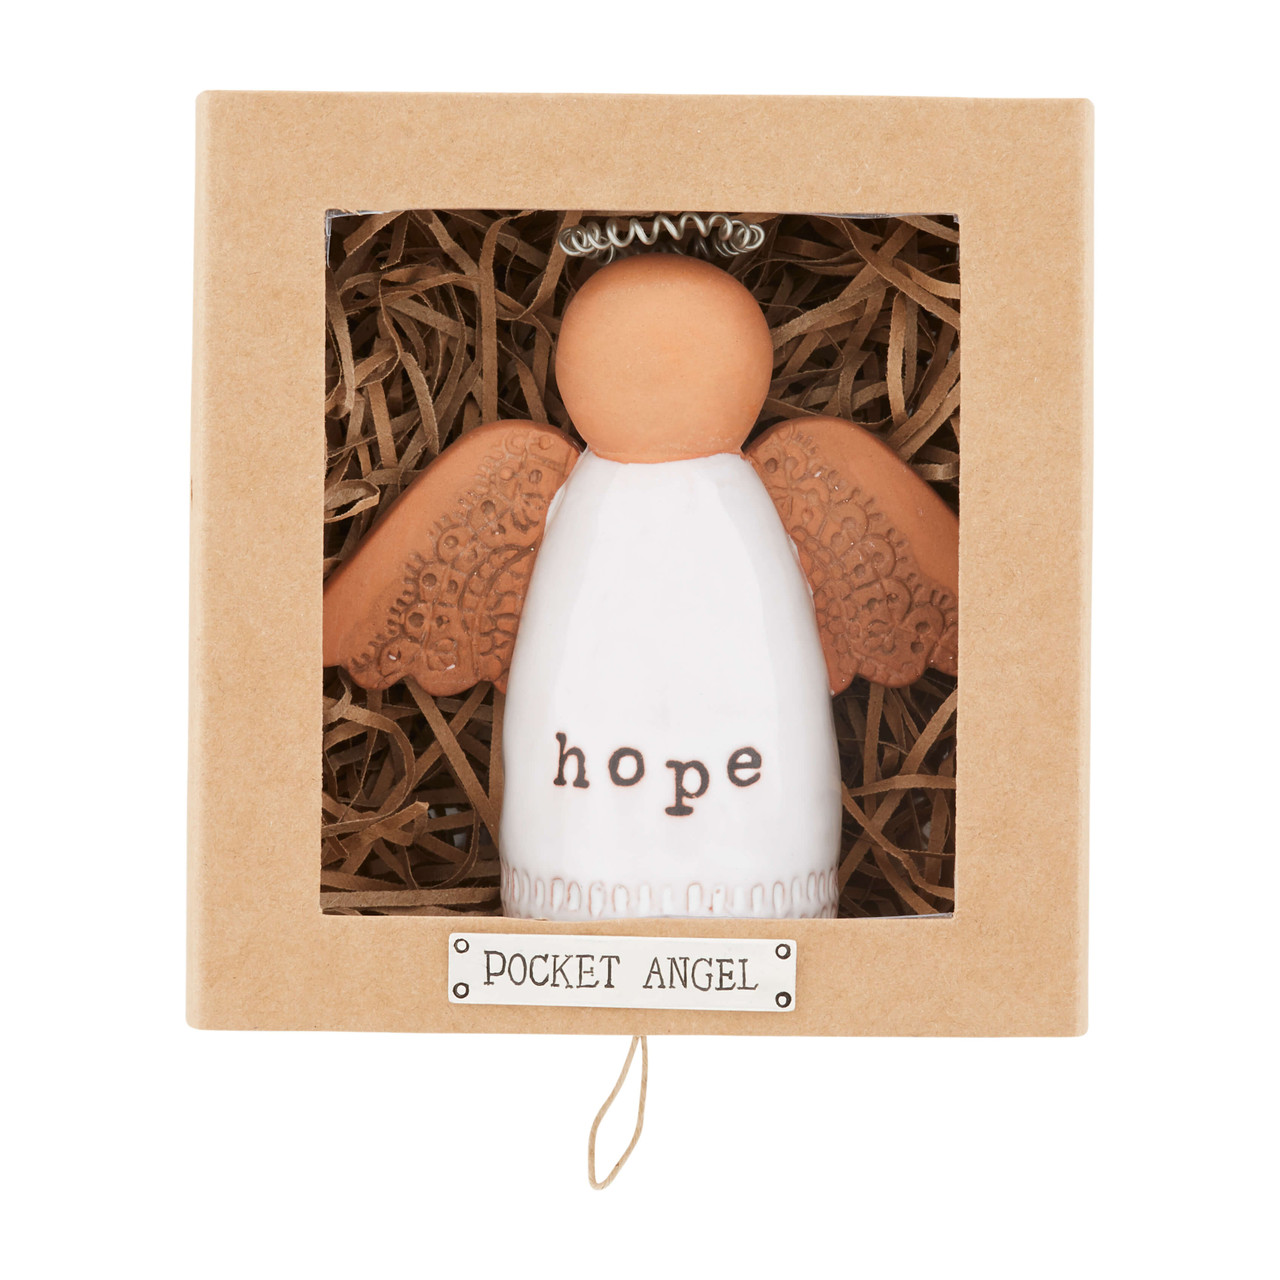 """Terracotta angel with """"hope"""" sentiment on her glaze painted dress. She is approx 3.5"""" tall x 4"""" wide including her stamped clay wings. She arrives in a 4.75' tall x 4.5' wide x 2.25' deep gift box."""